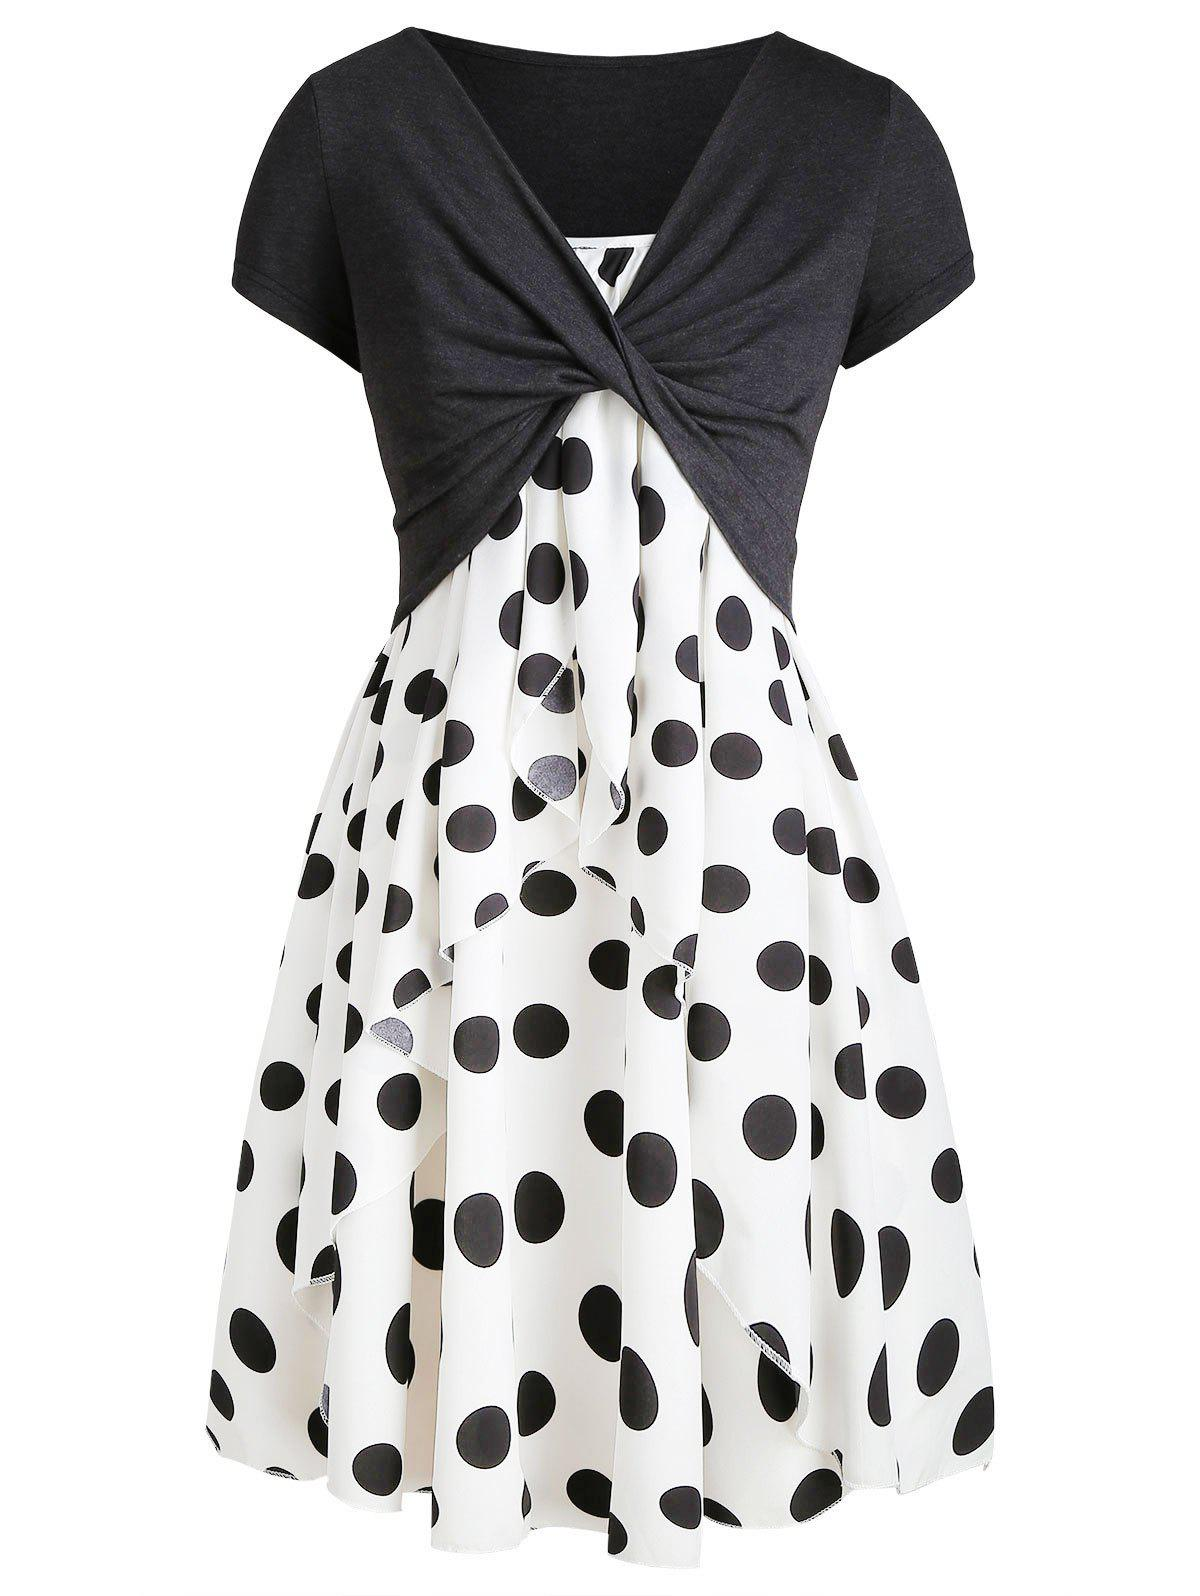 Shop Cami Polka Dot Dress with Crop T-shirt